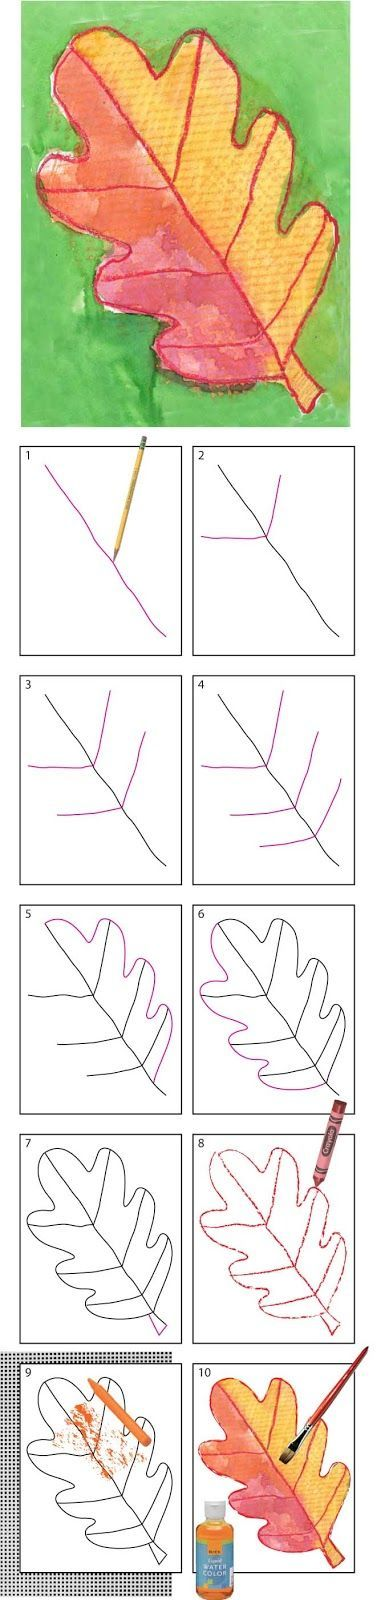 Directed drawing of an autumn leaf ... great follow-up to a nature walk!